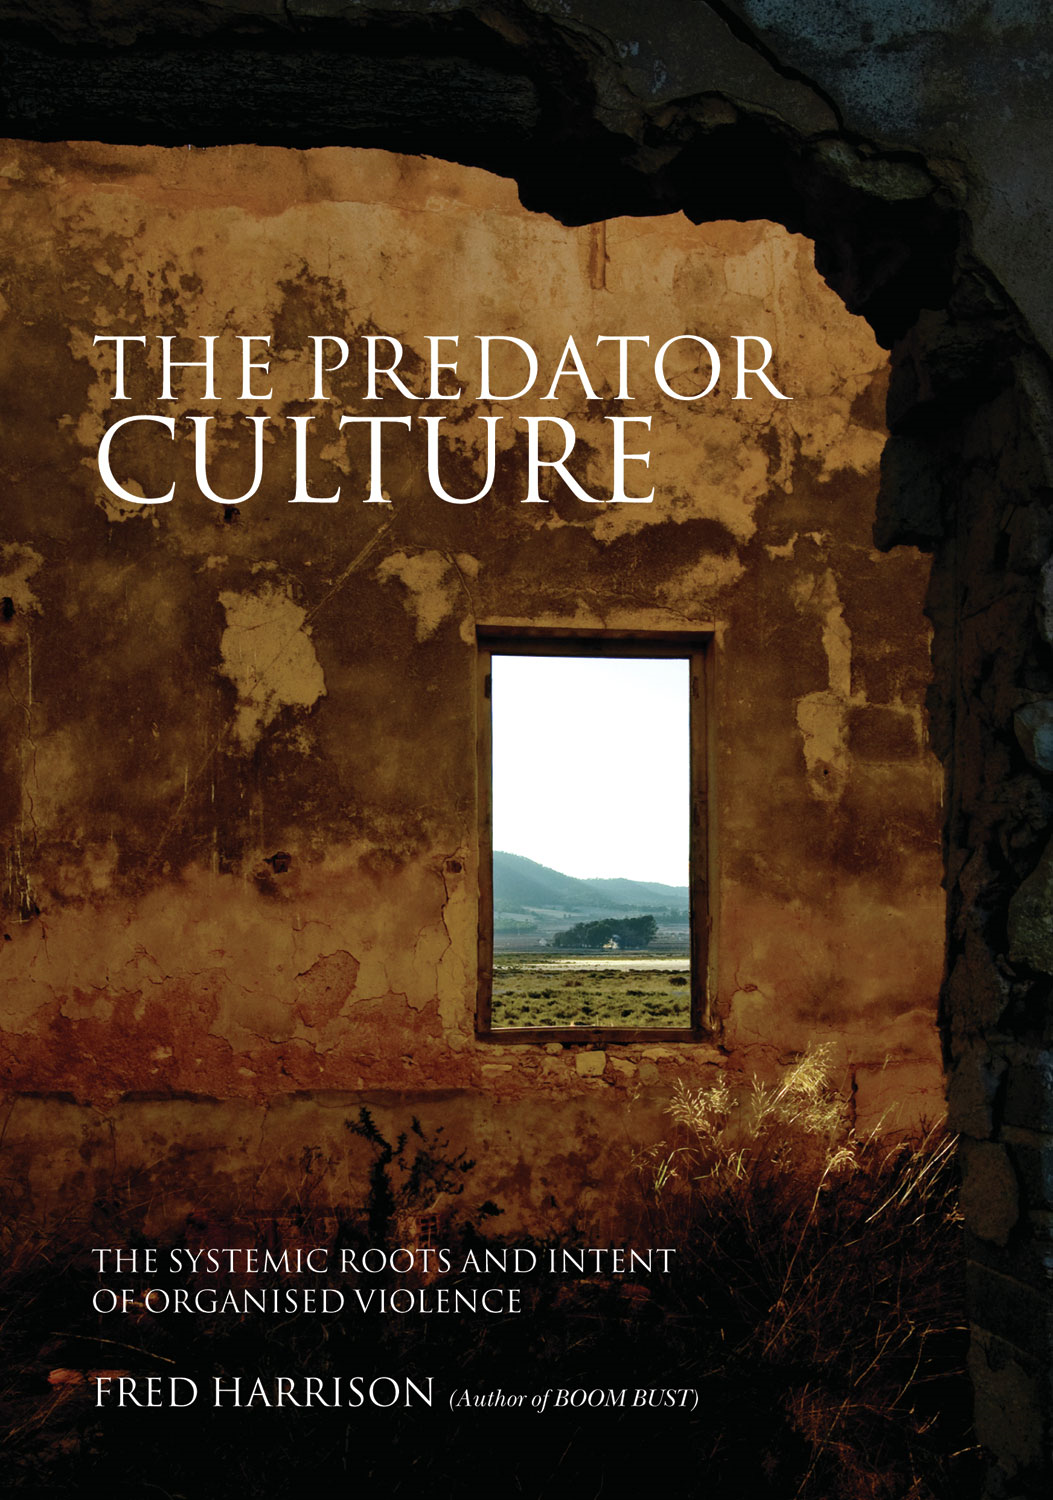 The Predator Culture: The Systemic Roots and Intent of Organised Violence